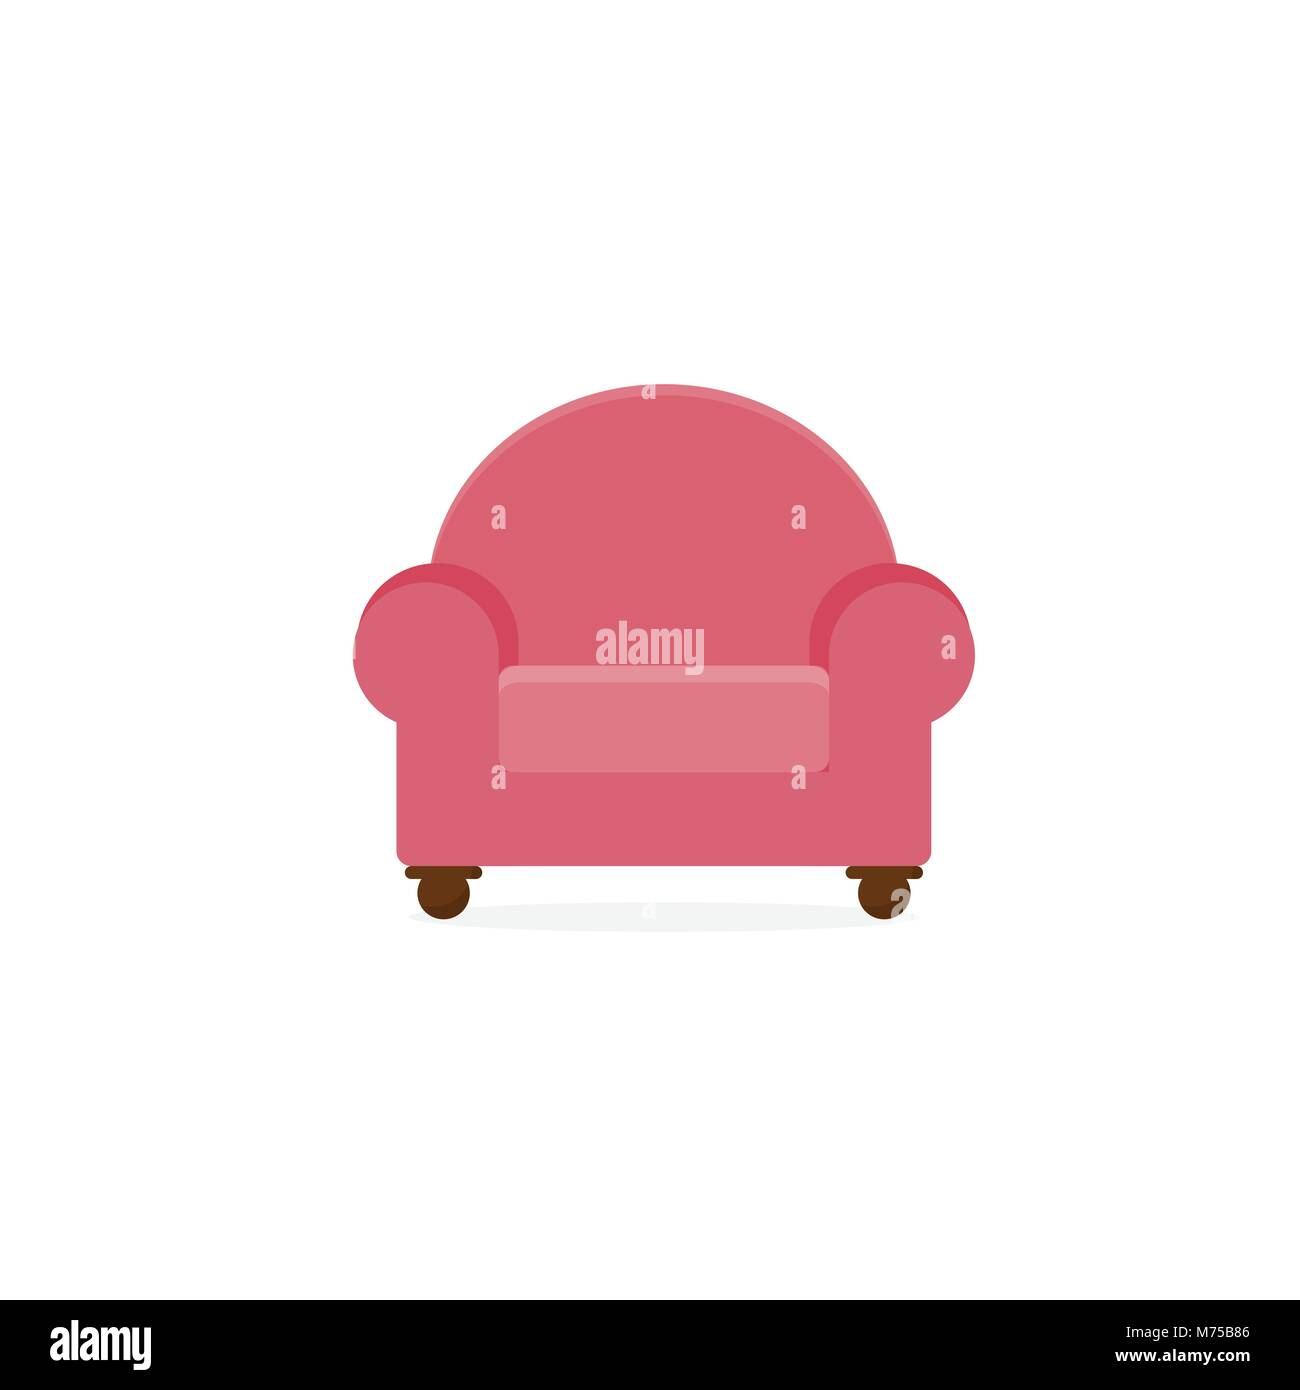 Pink Single Seat Comfort Sofa Furniture Vector Illustration Graphic